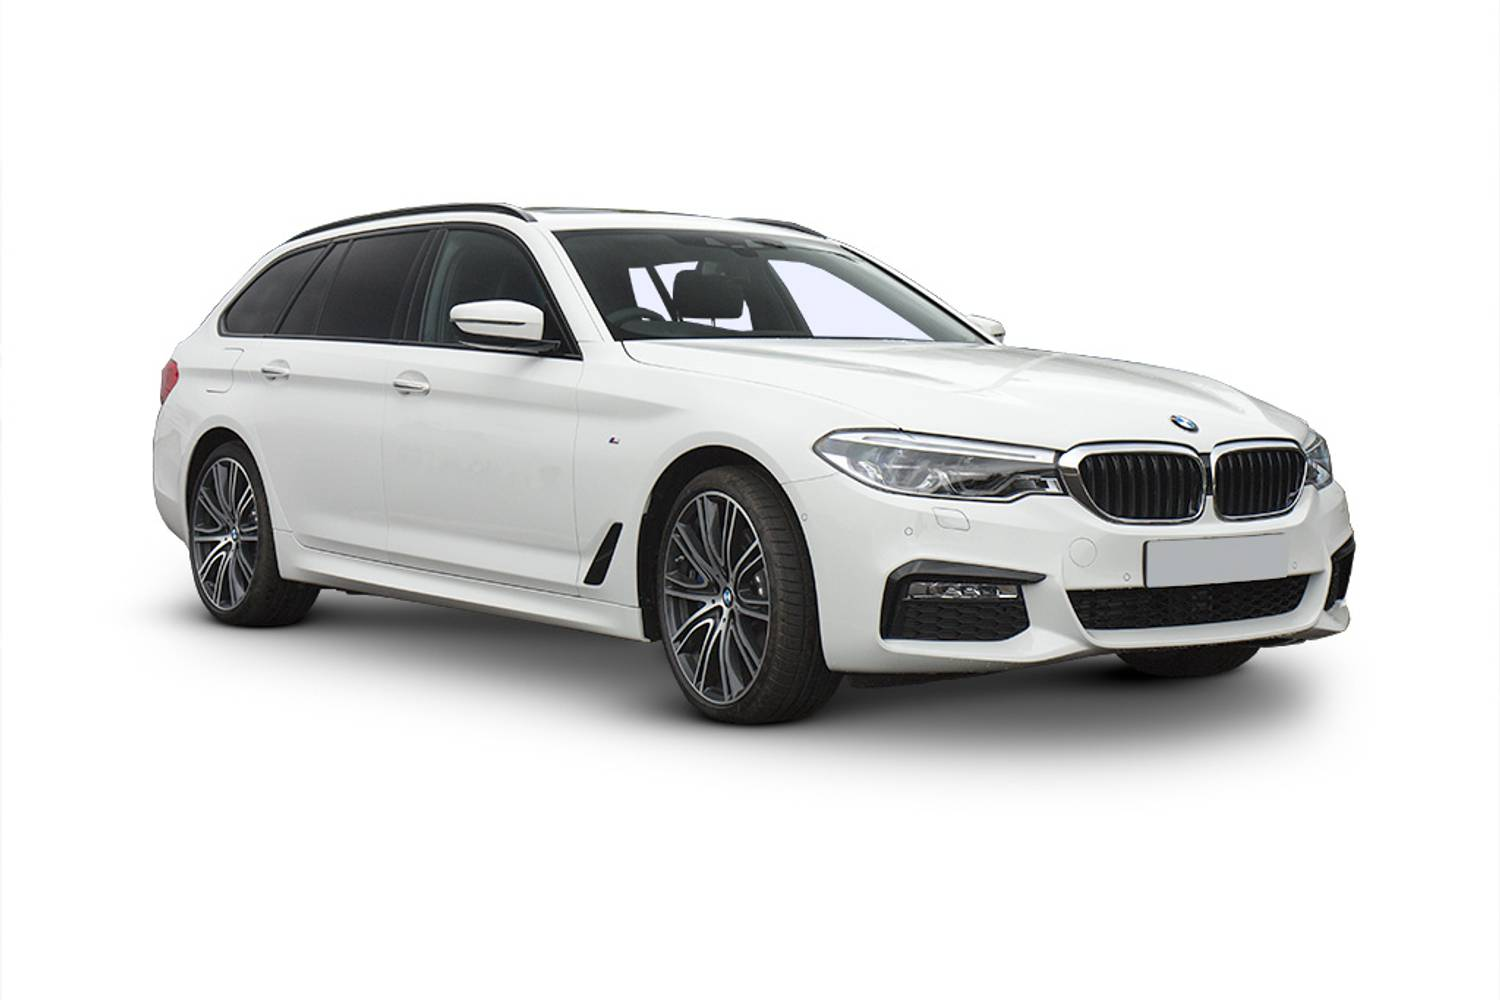 new bmw 5 series touring 540i xdrive se 5 door auto 2017 for sale. Black Bedroom Furniture Sets. Home Design Ideas